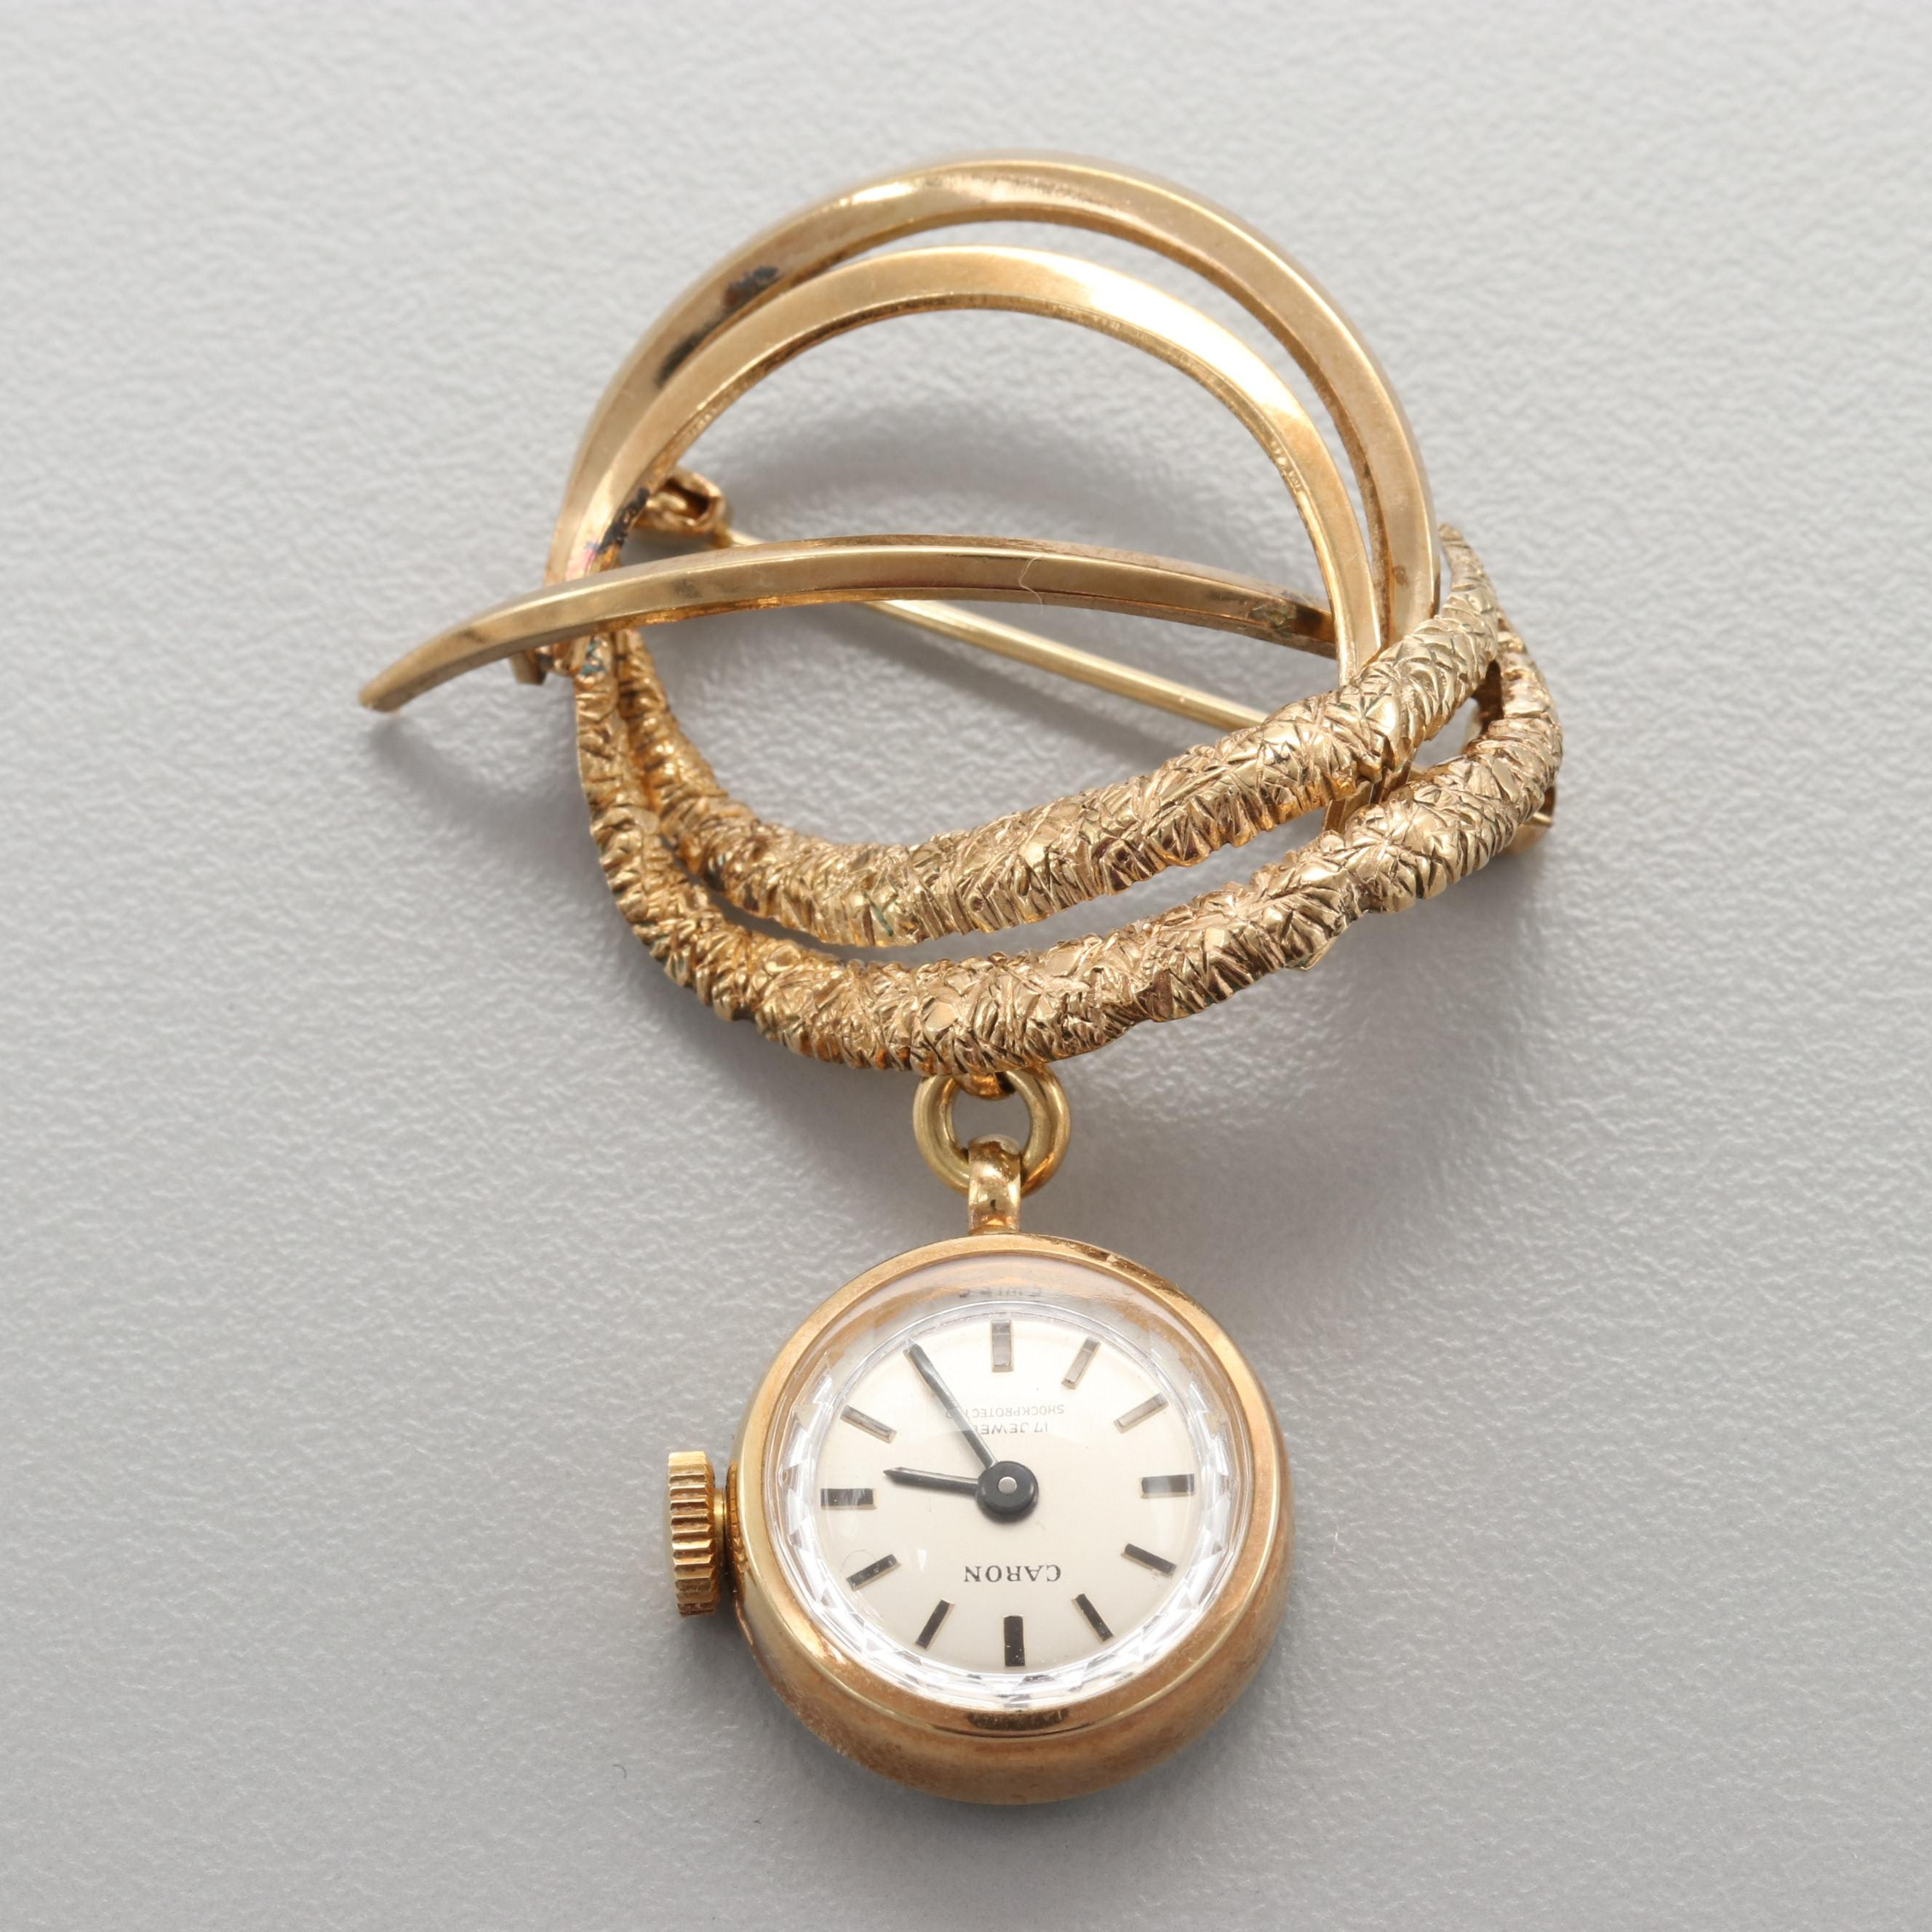 Caron Gold Tone Stainless Steel Brooch Watch